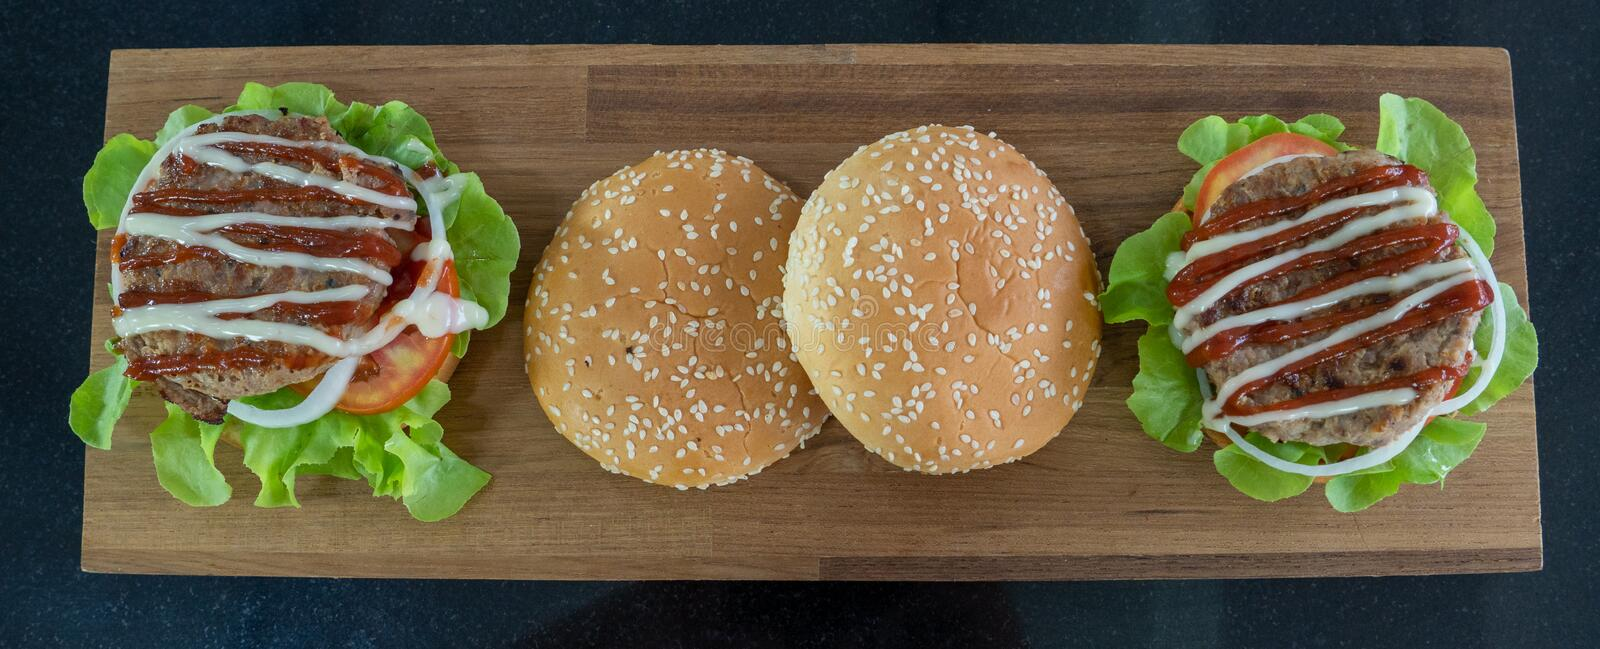 Top view, Ingredients of hamburgers placed on a wooden cutting board royalty free stock photography